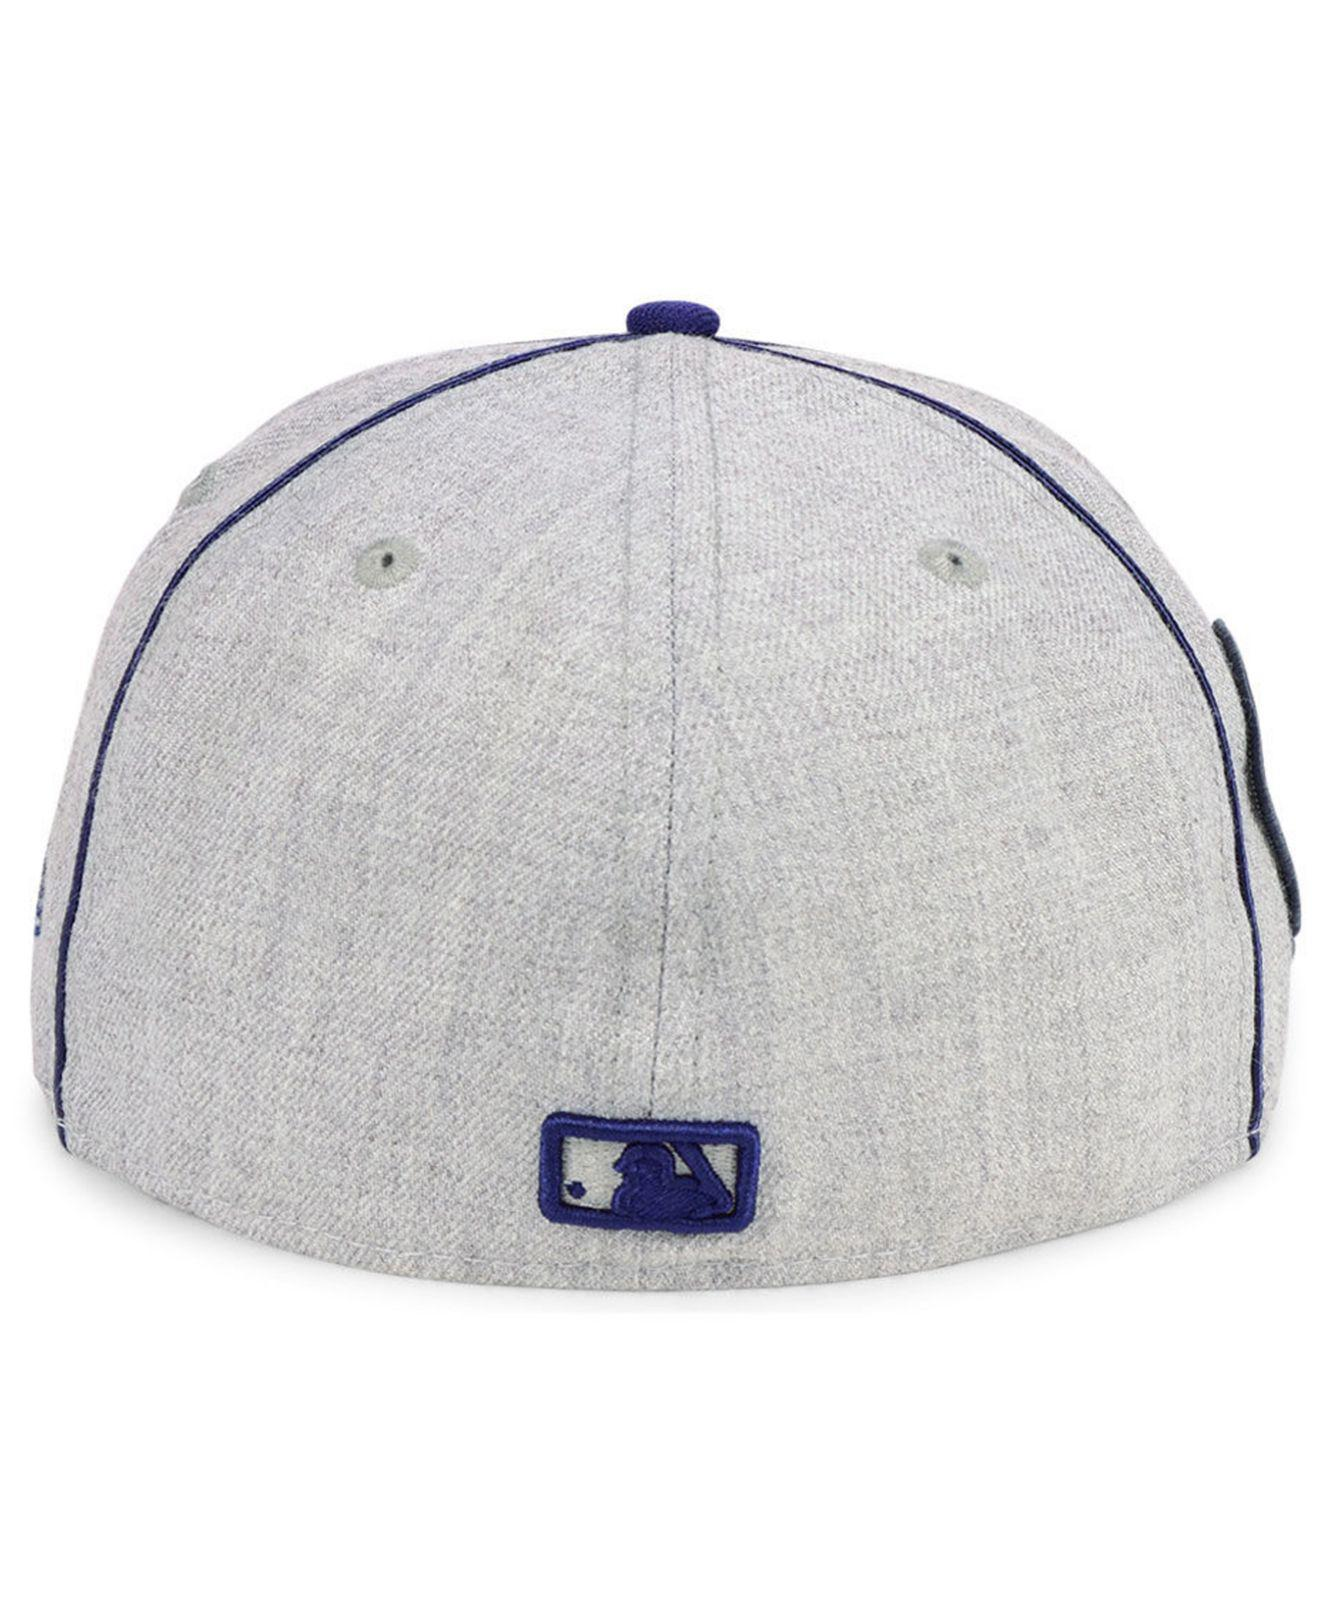 reputable site c6229 ebaed Lyst - KTZ Milwaukee Brewers Stache 59fifty Fitted Cap for Men